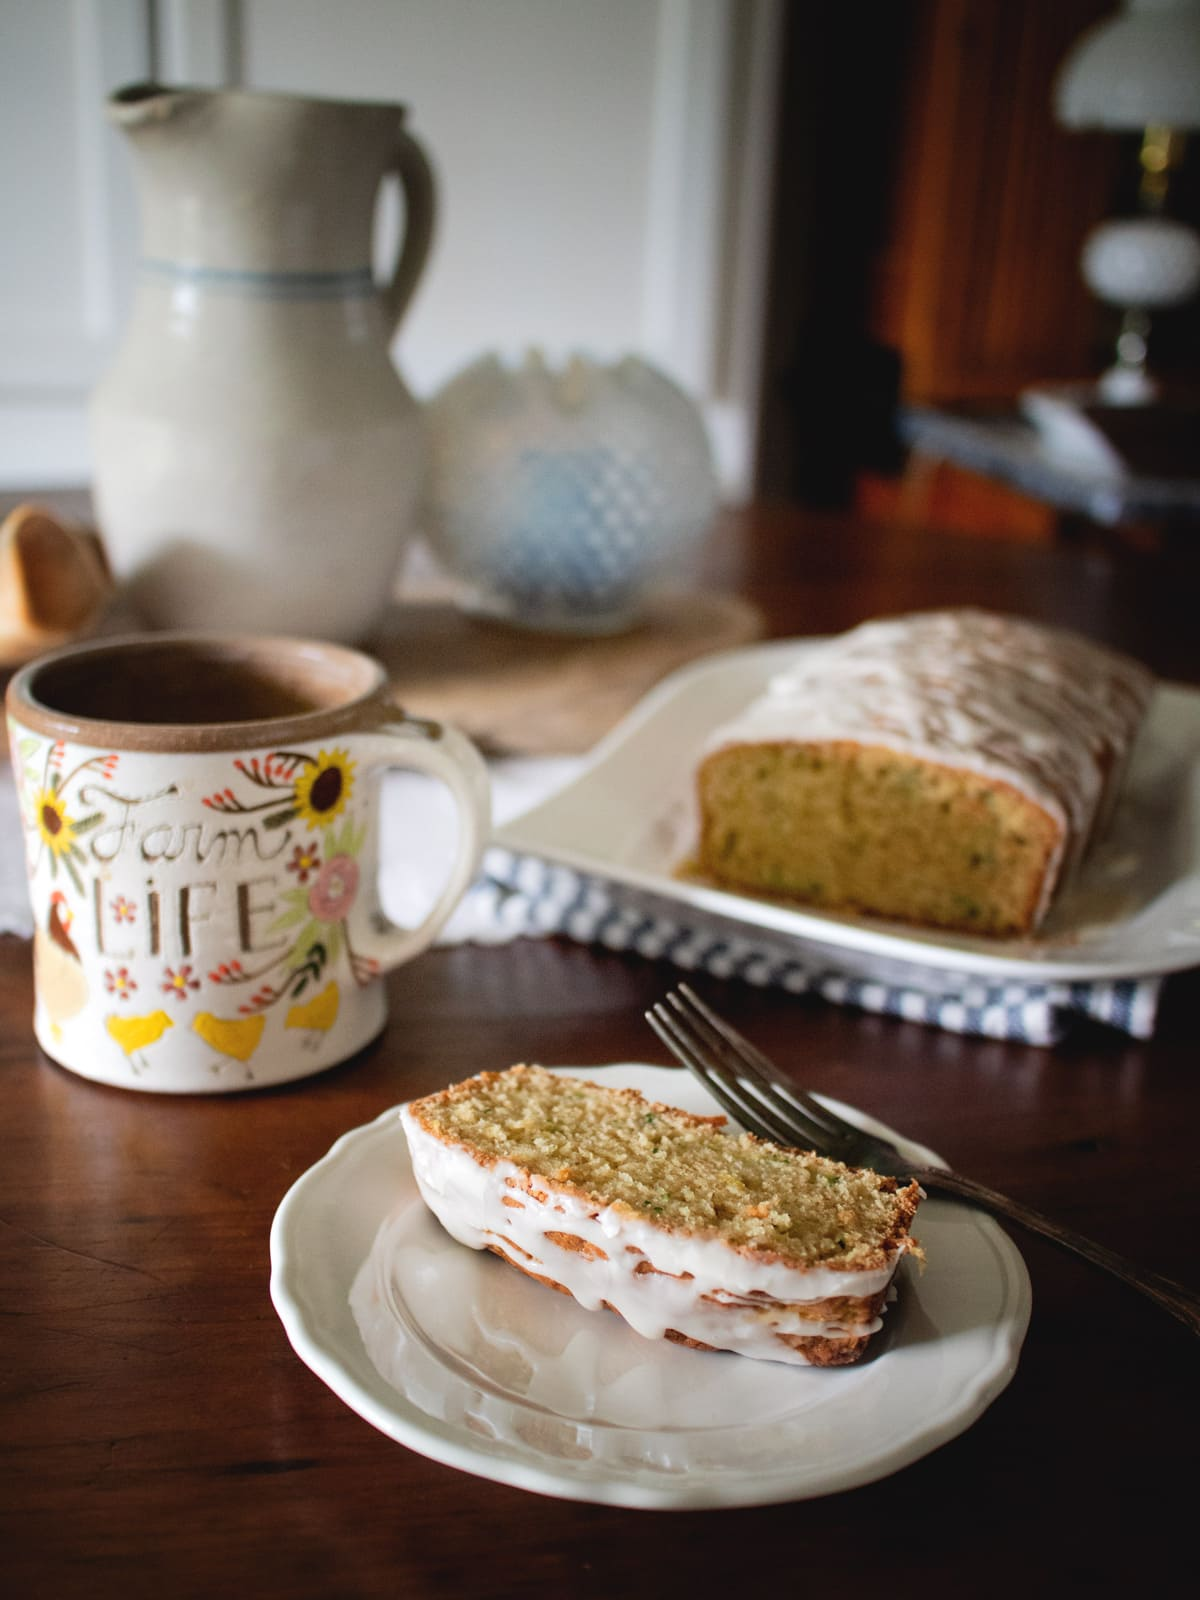 This delicious lemon zucchini bread has a lovely lemon glaze and is a quick favorite for your summer squash.